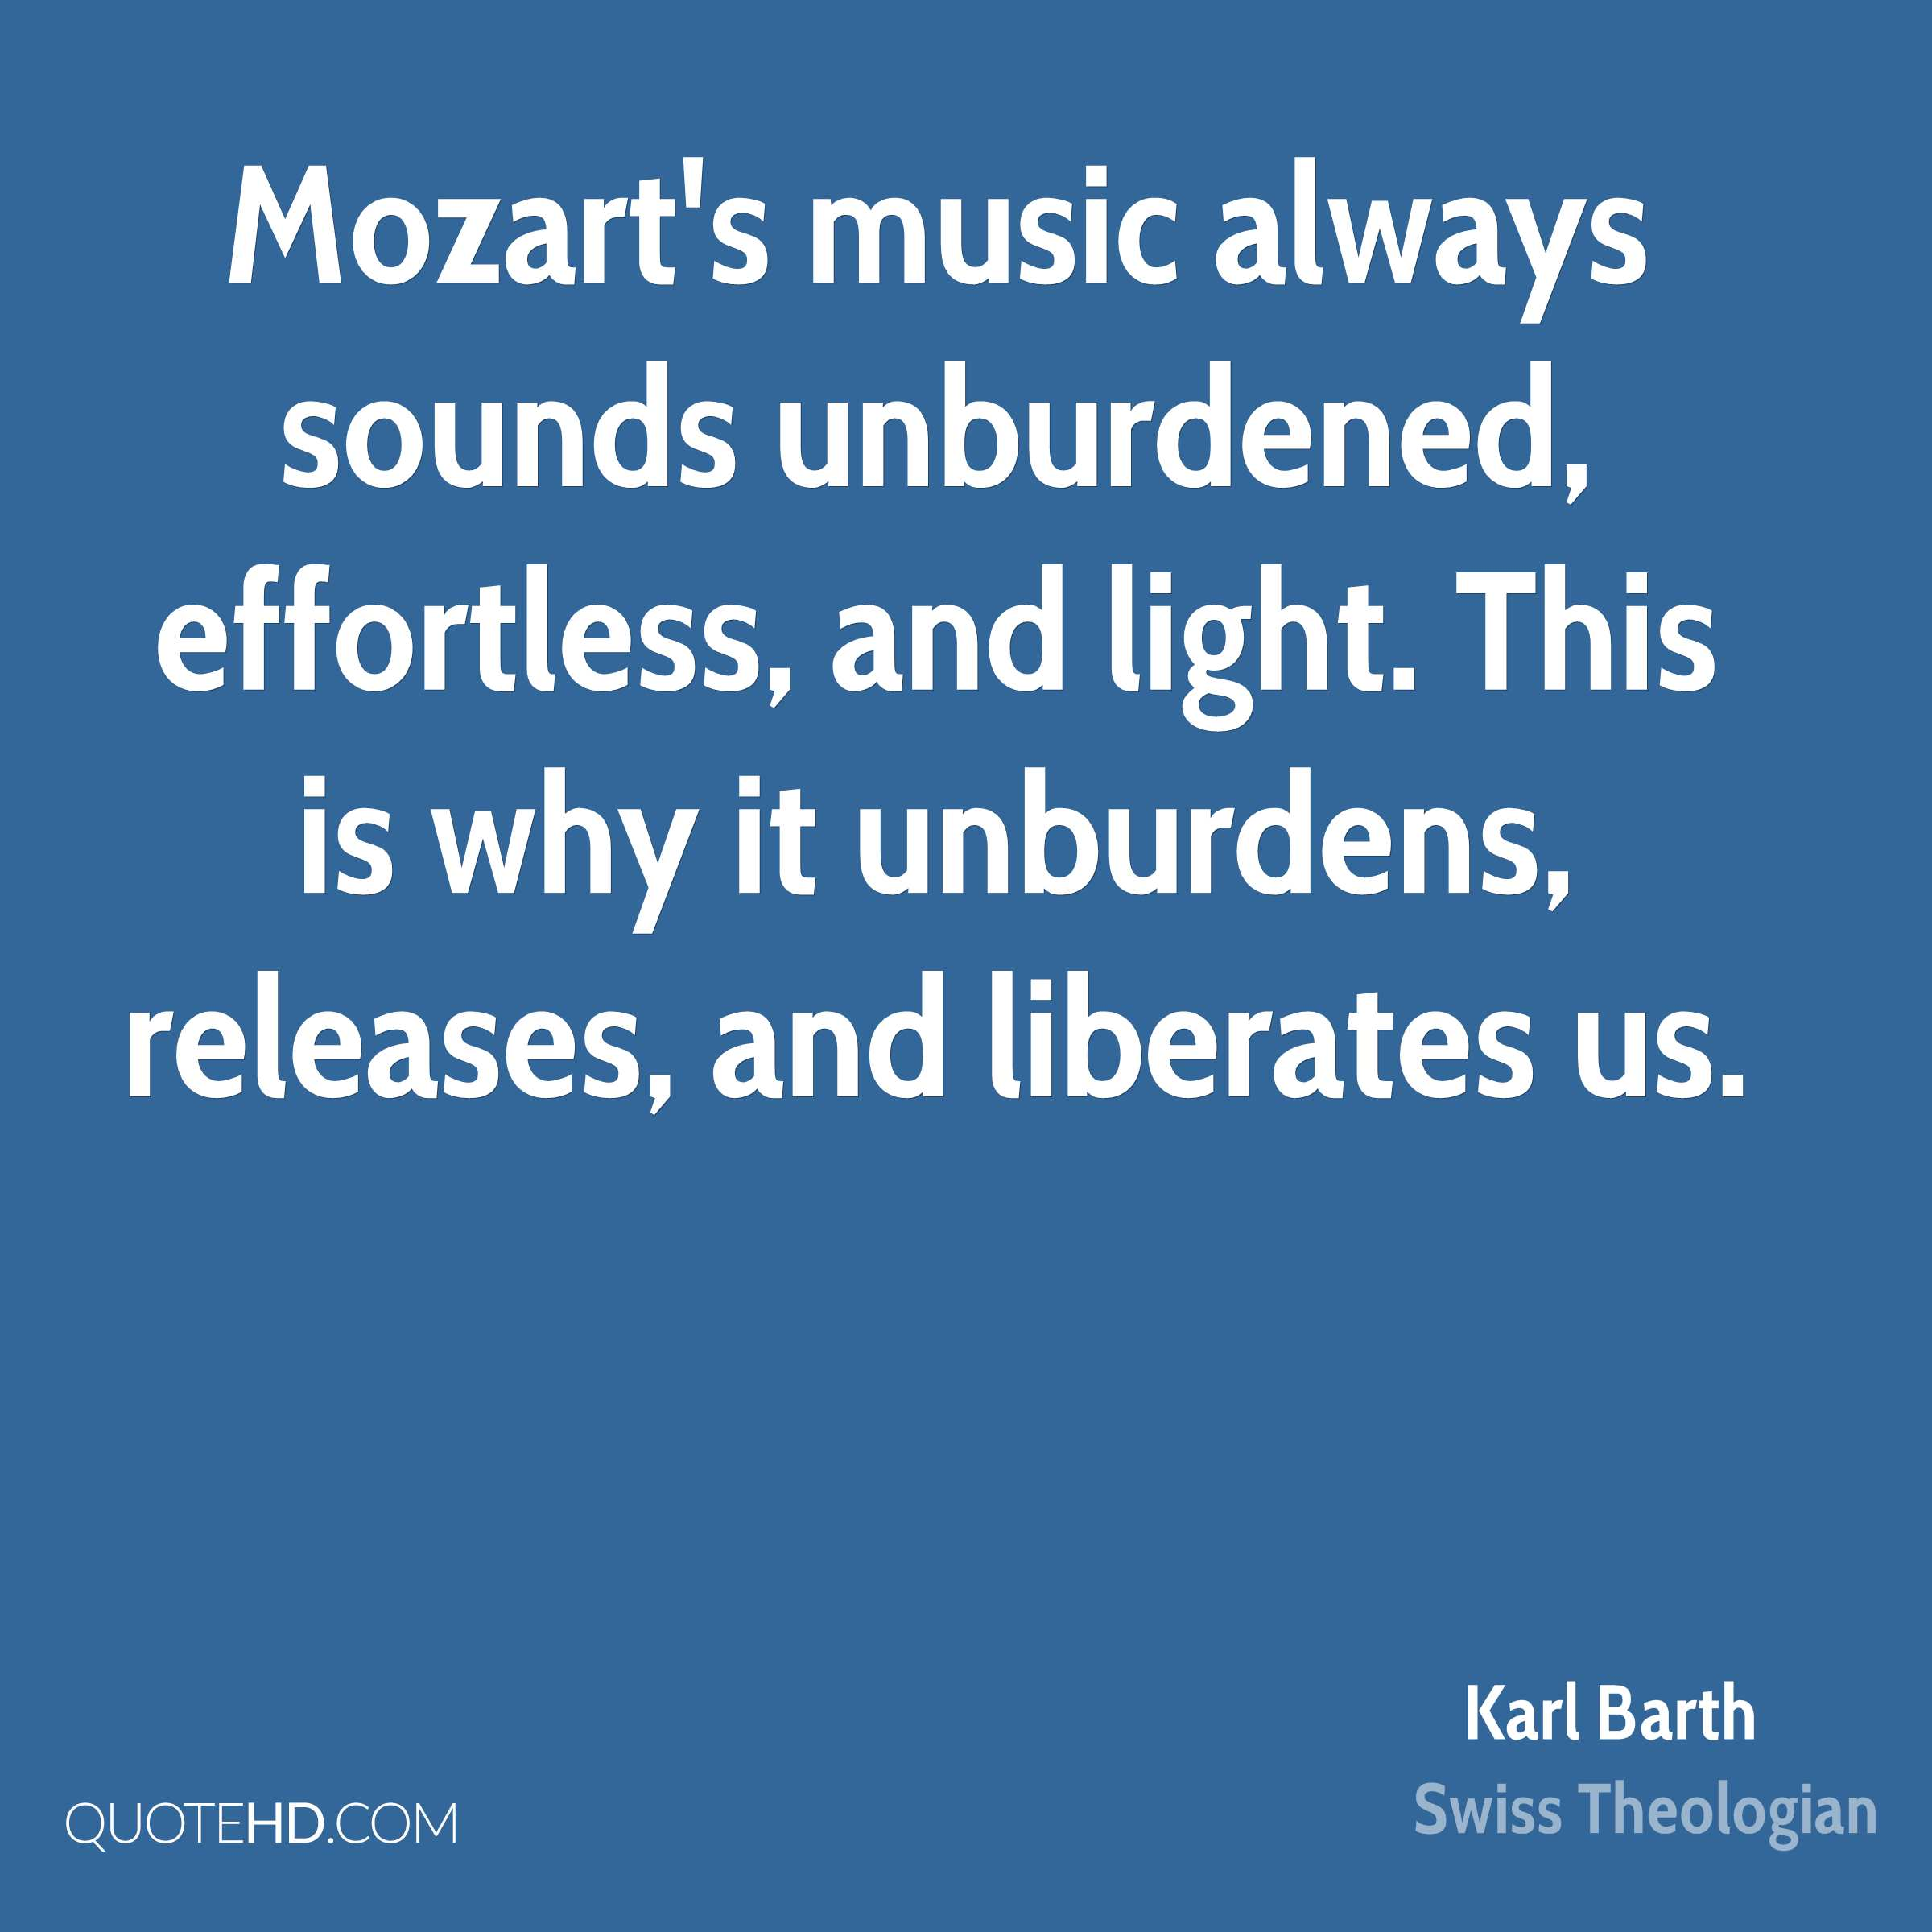 Mozart's music always sounds unburdened, effortless, and light. This is why it unburdens, releases, and liberates us.